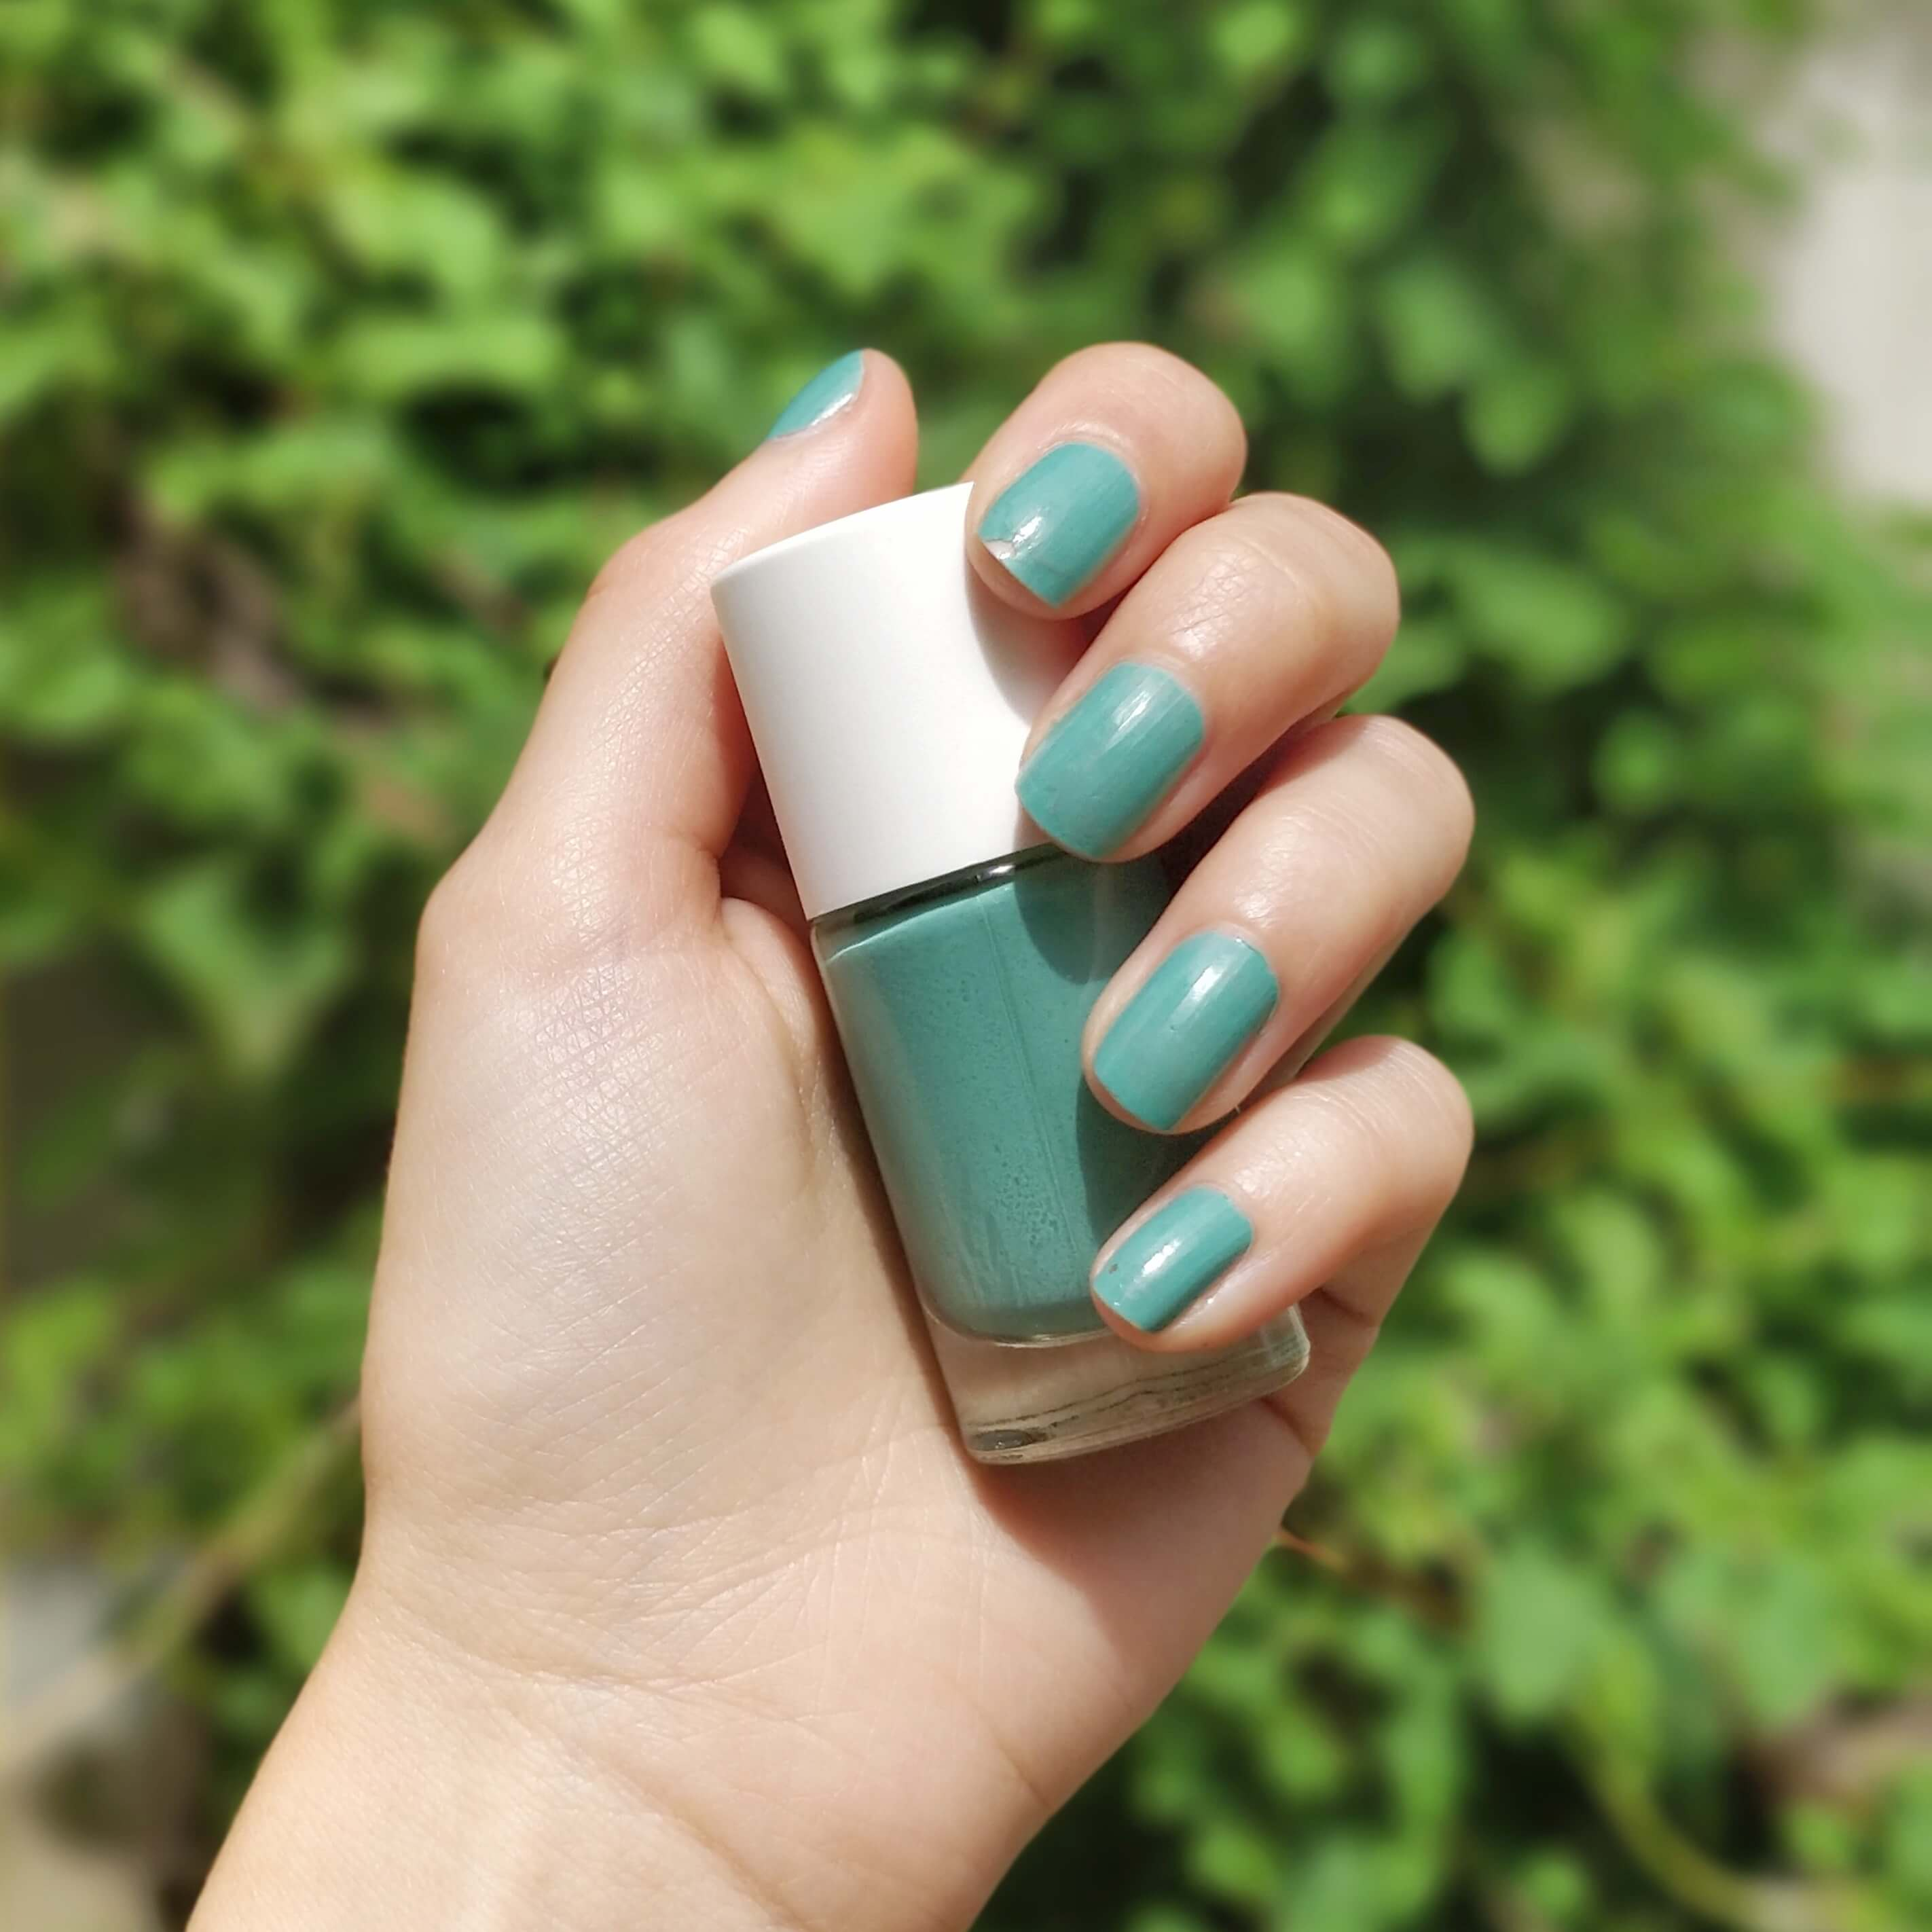 vernis nailmatic made in france - Les vernis made in France tiennent-ils leurs promesses ?